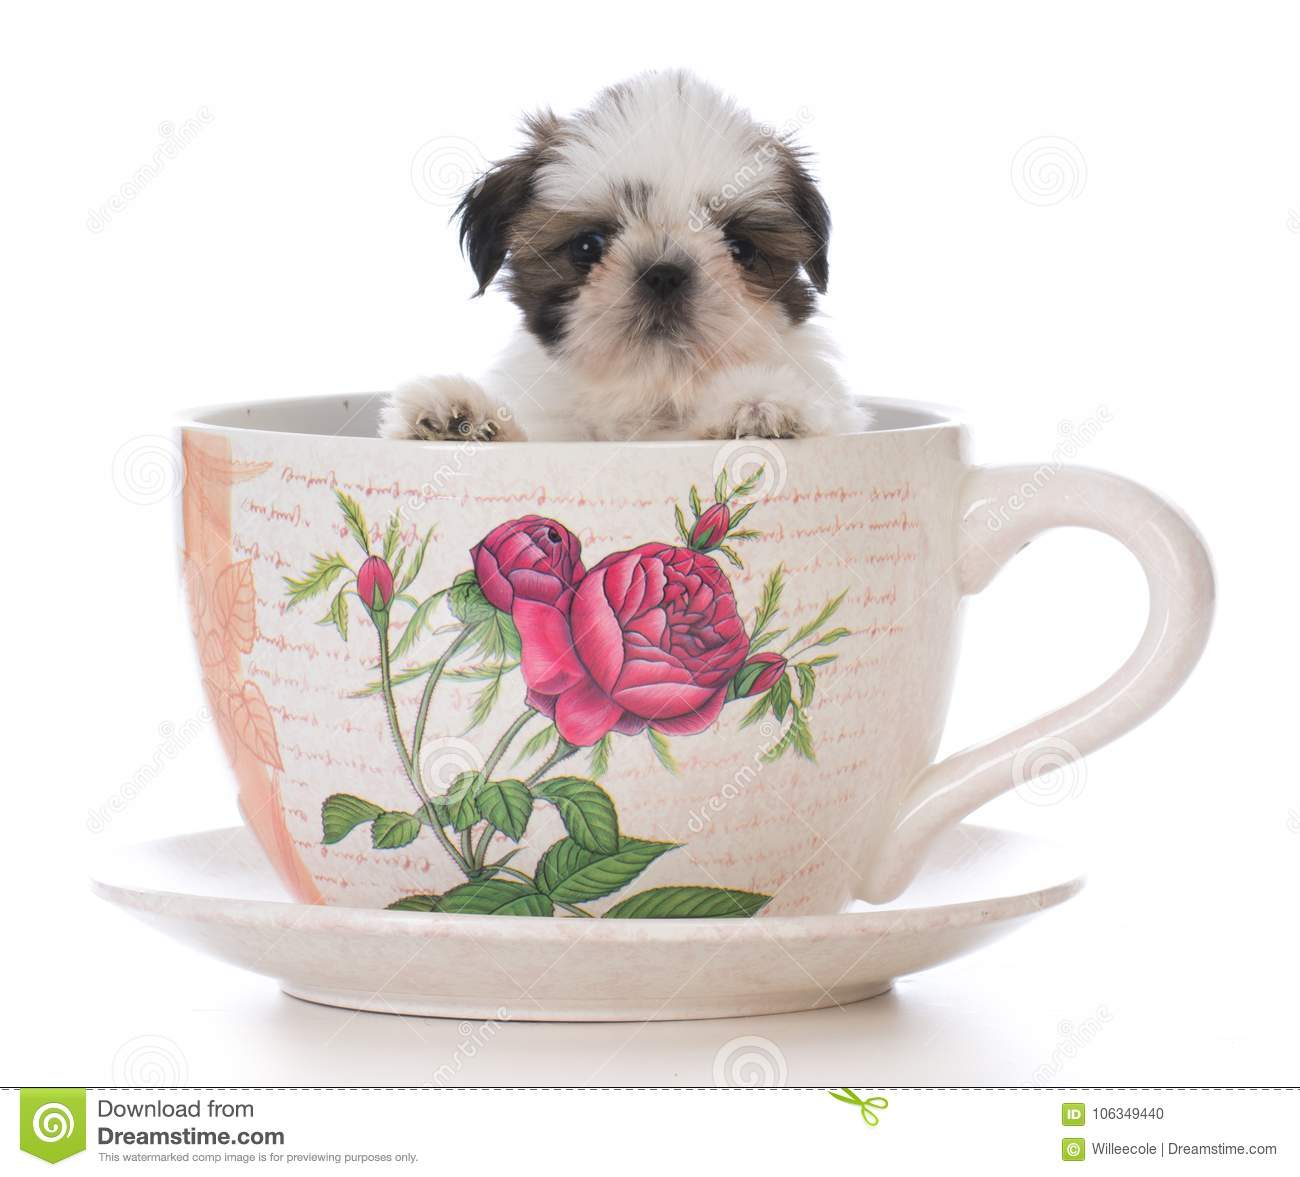 Adorable Shih Tzu Puppy In A Tea Cup Stock Photo Image Of Teacup